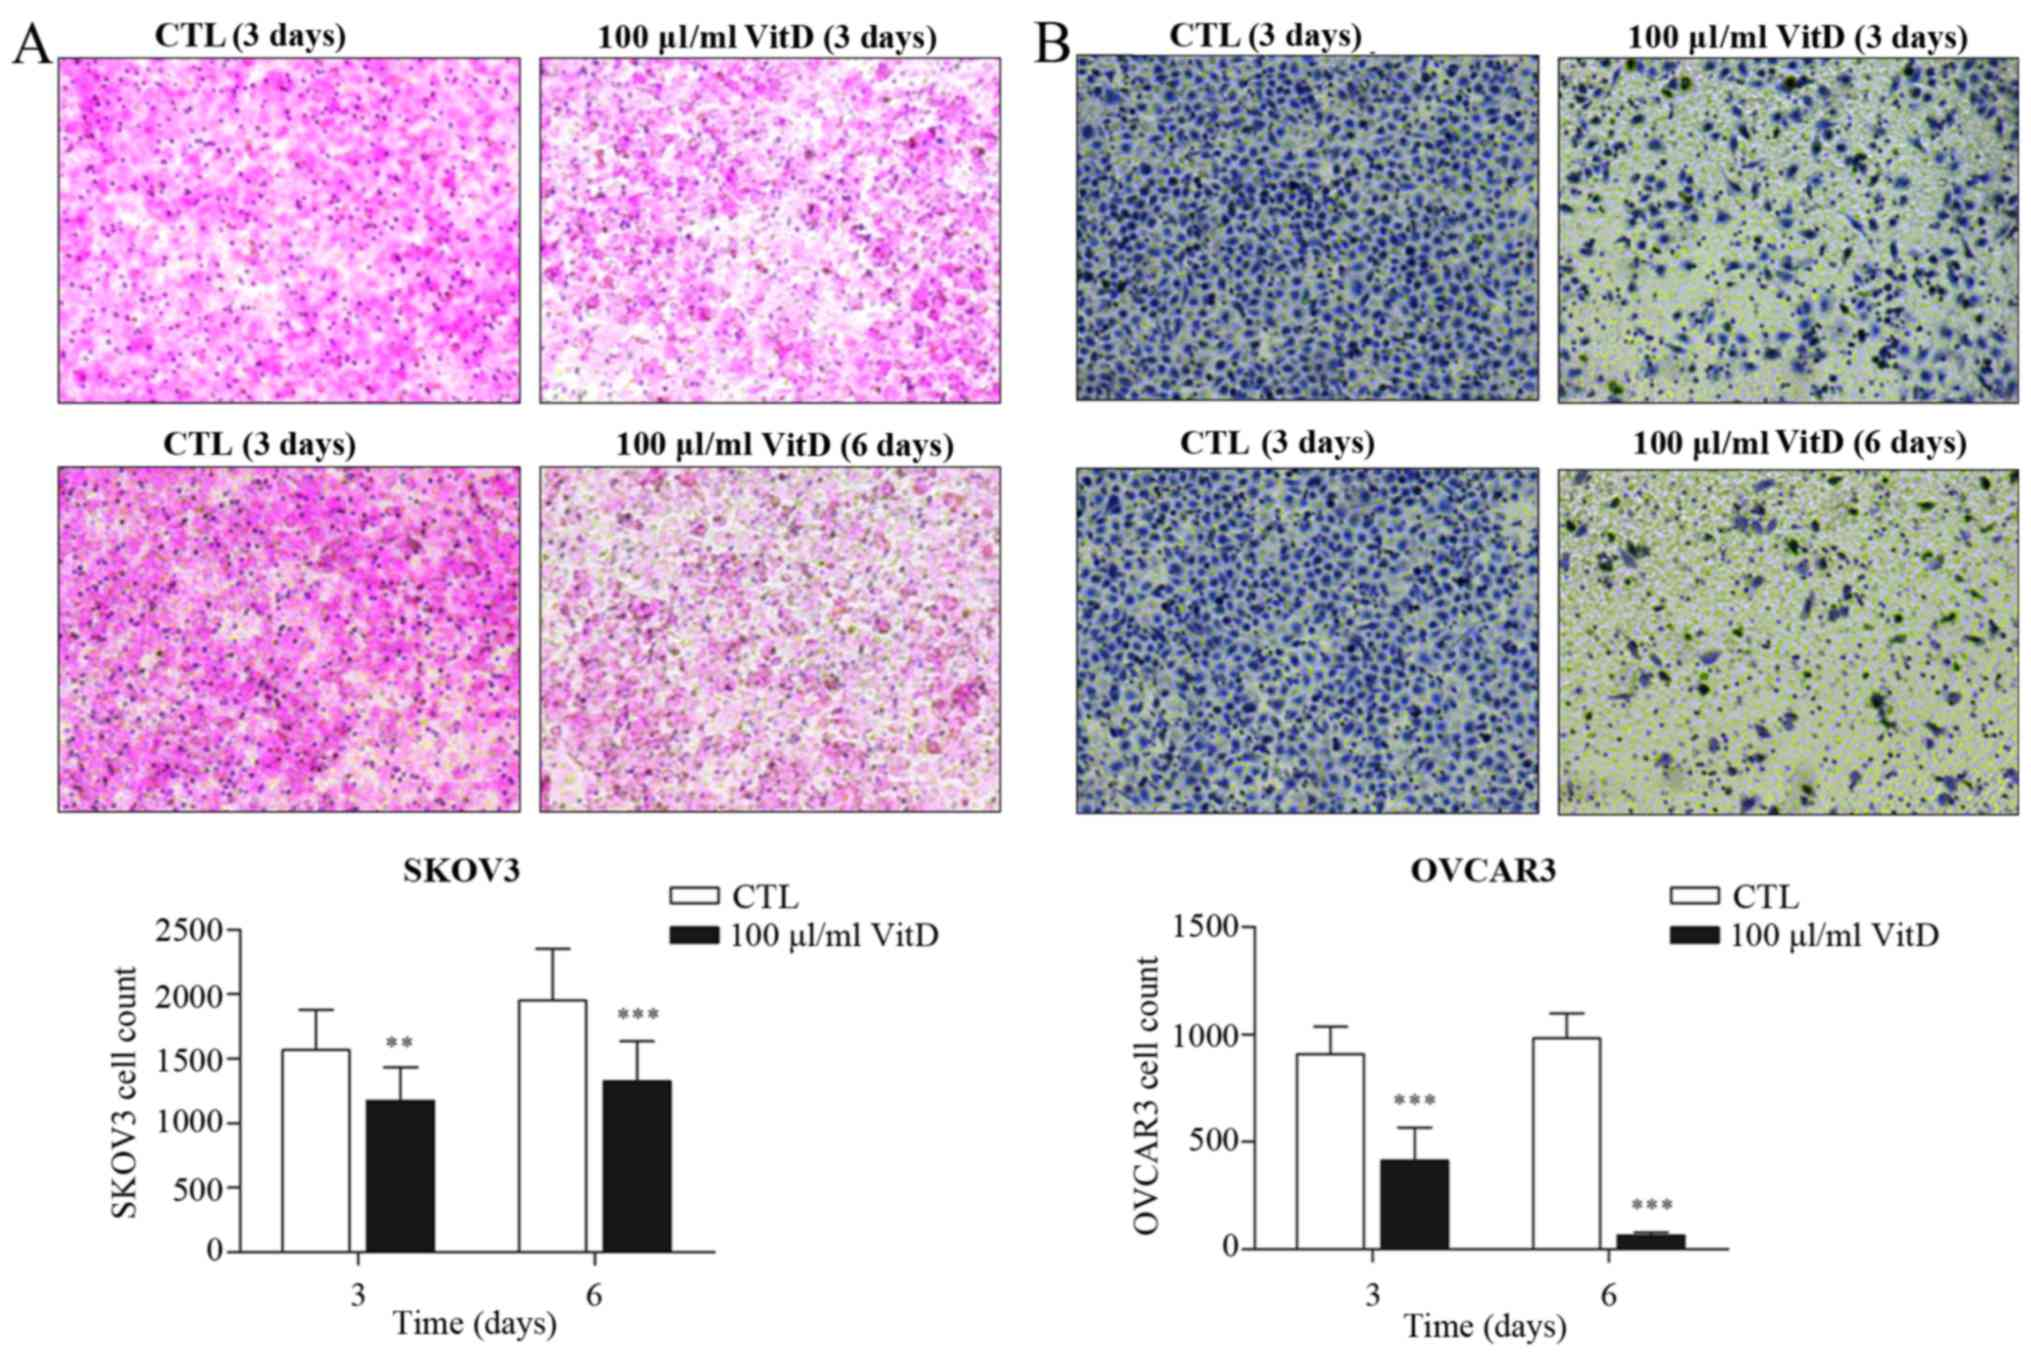 Vitamin D And Ddx4 Regulate The Proliferation And Invasion Of Ovarian Cancer Cells